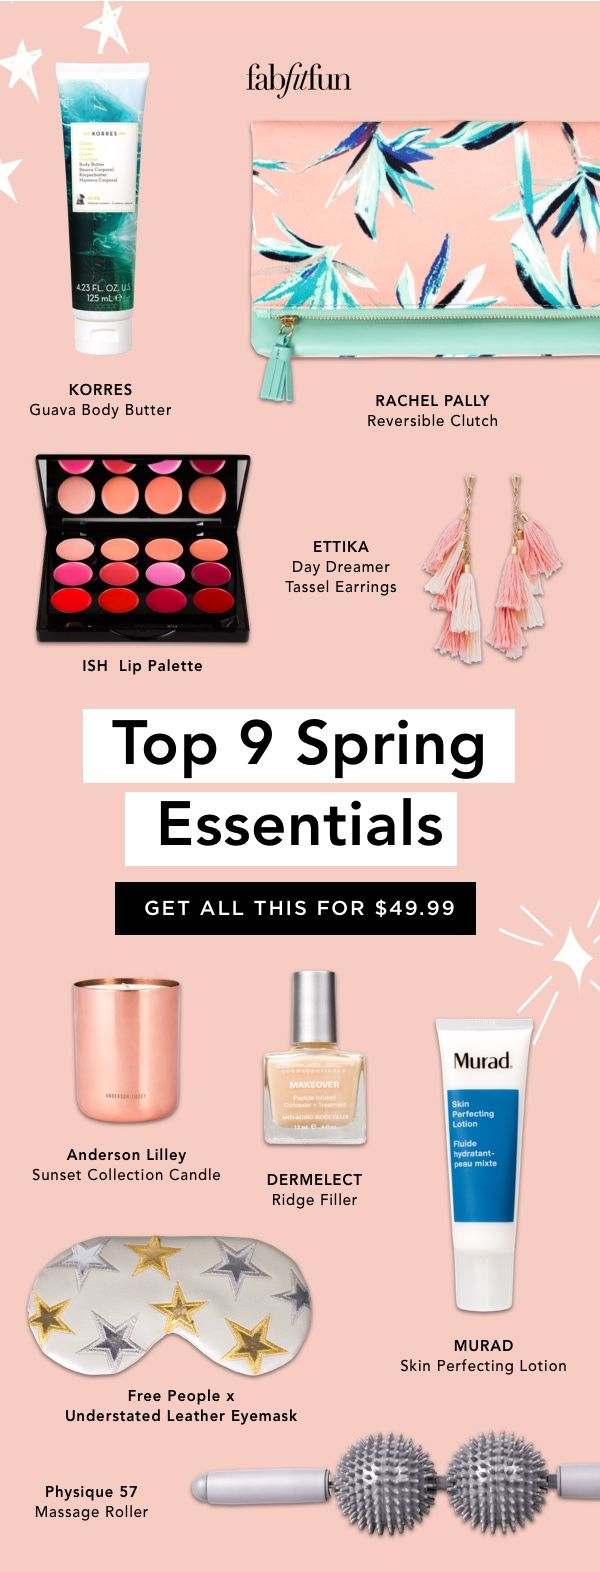 Get all the Spring Essentials - beauty, skincare, accessories + fitness - in your FabFitFun. Just $39.99 with for your 1st box with code BRIGHT!